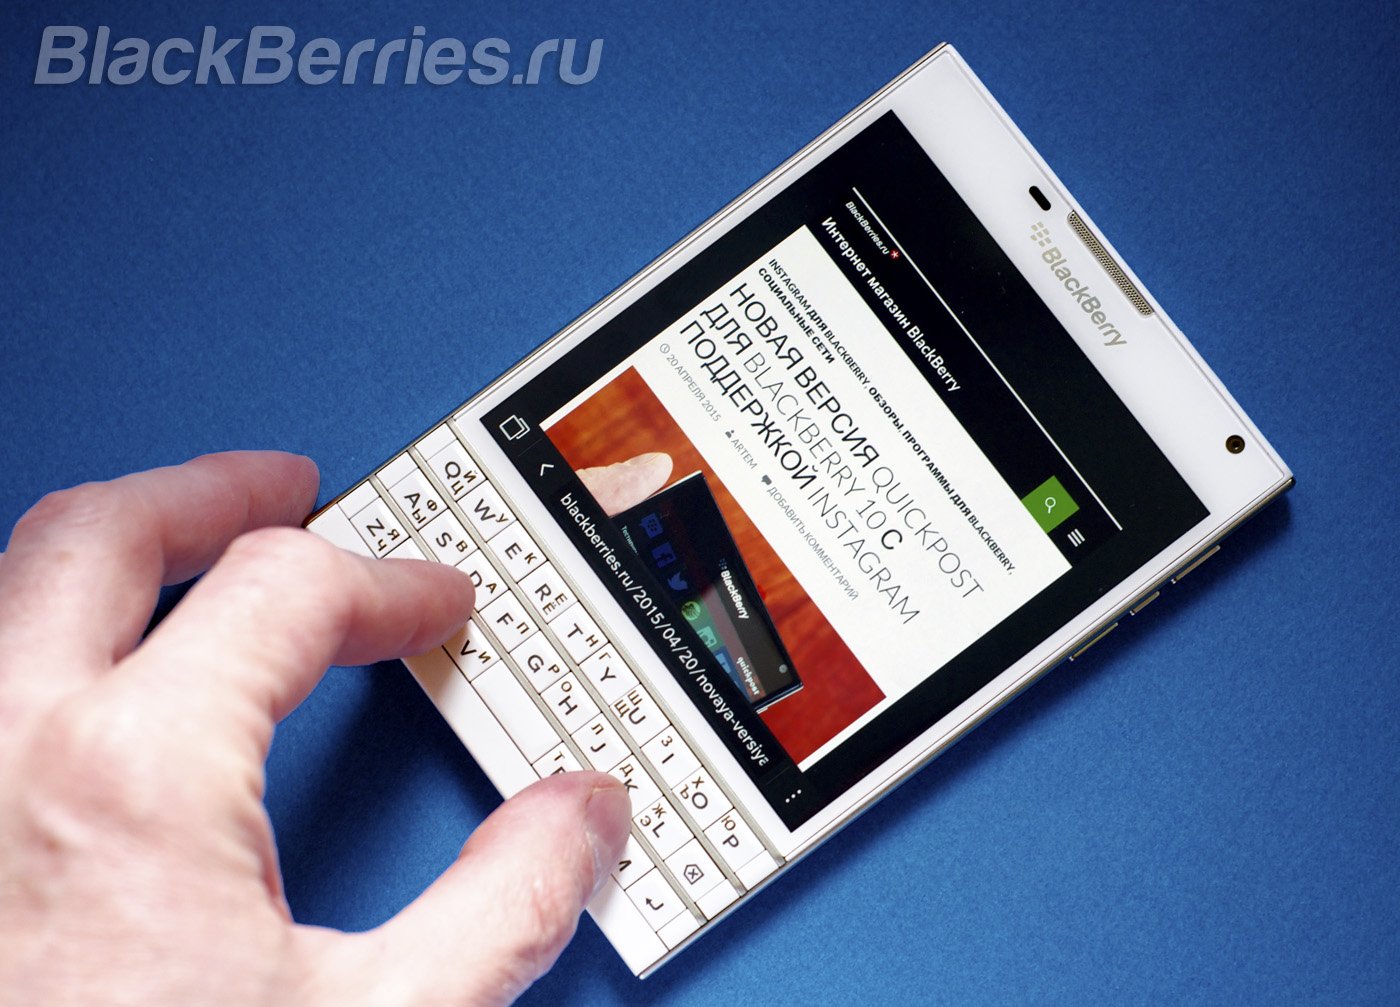 BlackBerry-Passport-10-3-2-500